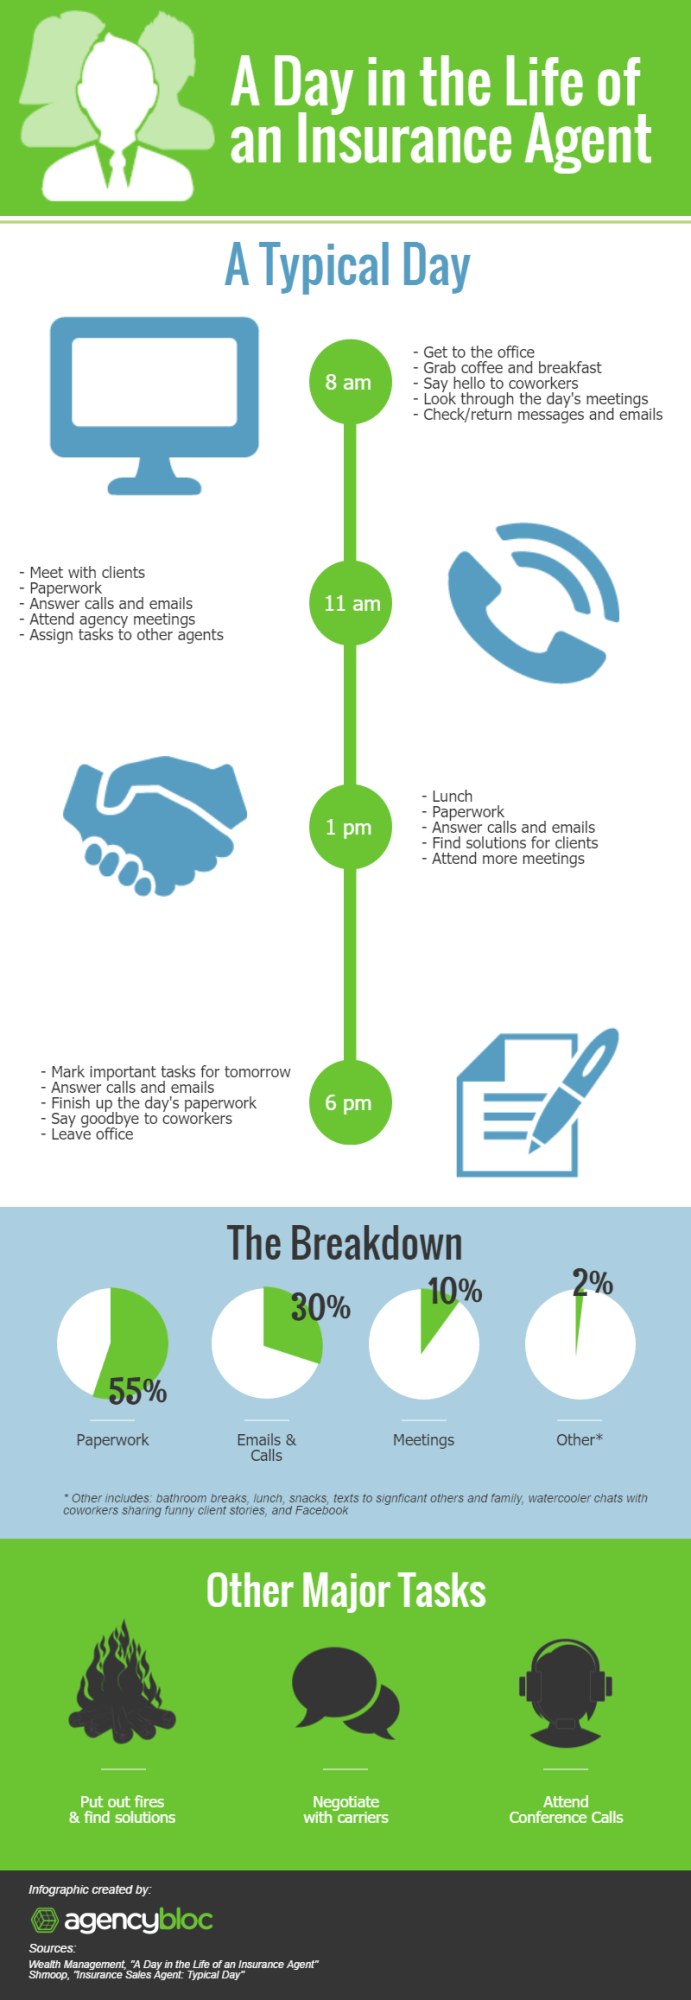 The Daily Life of an Insurance Agent Infographic